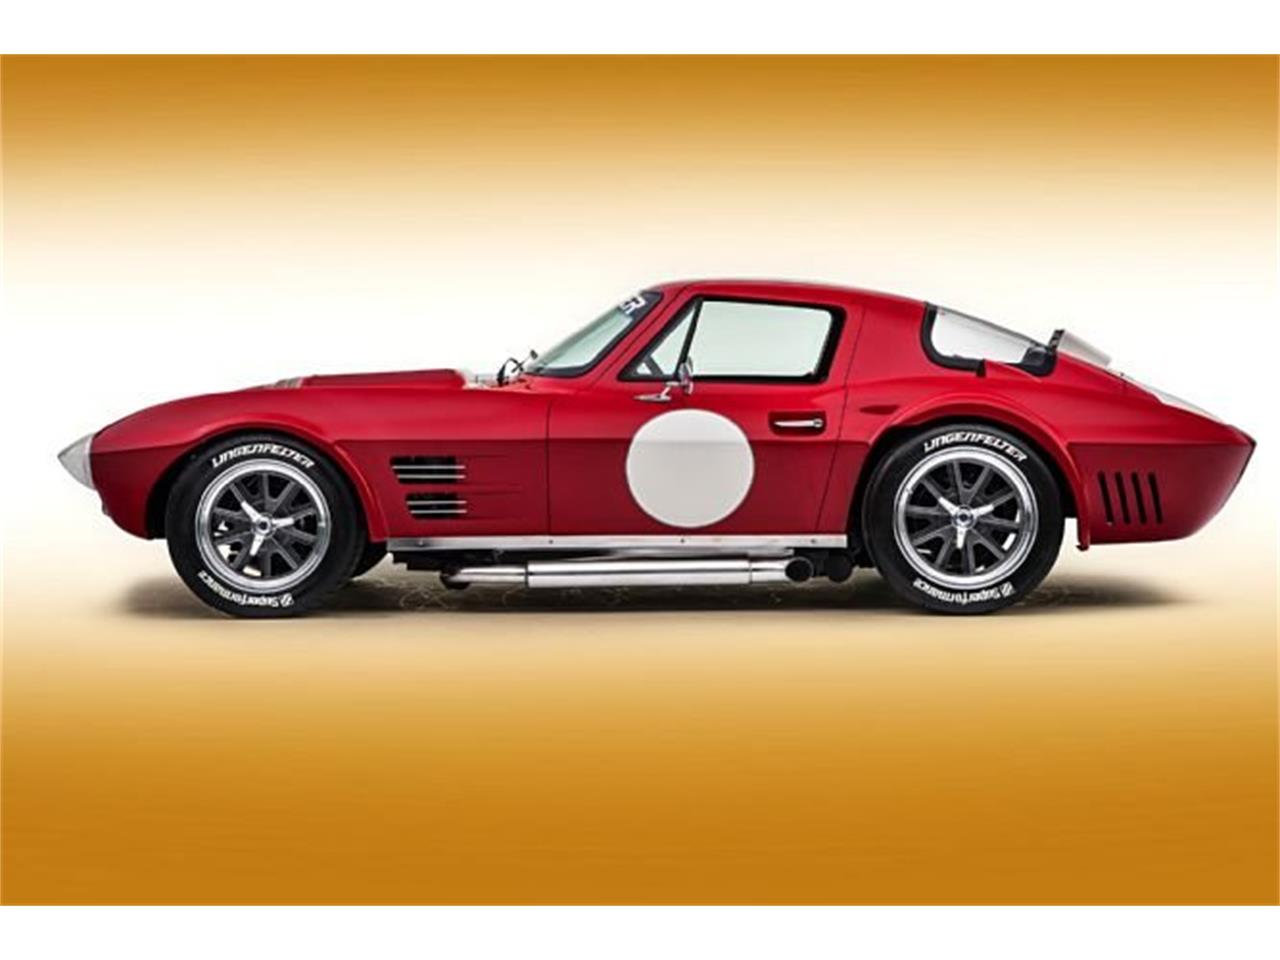 1963 Superformance Corvette Grand Sport (CC-1197784) for sale in Irvine, California